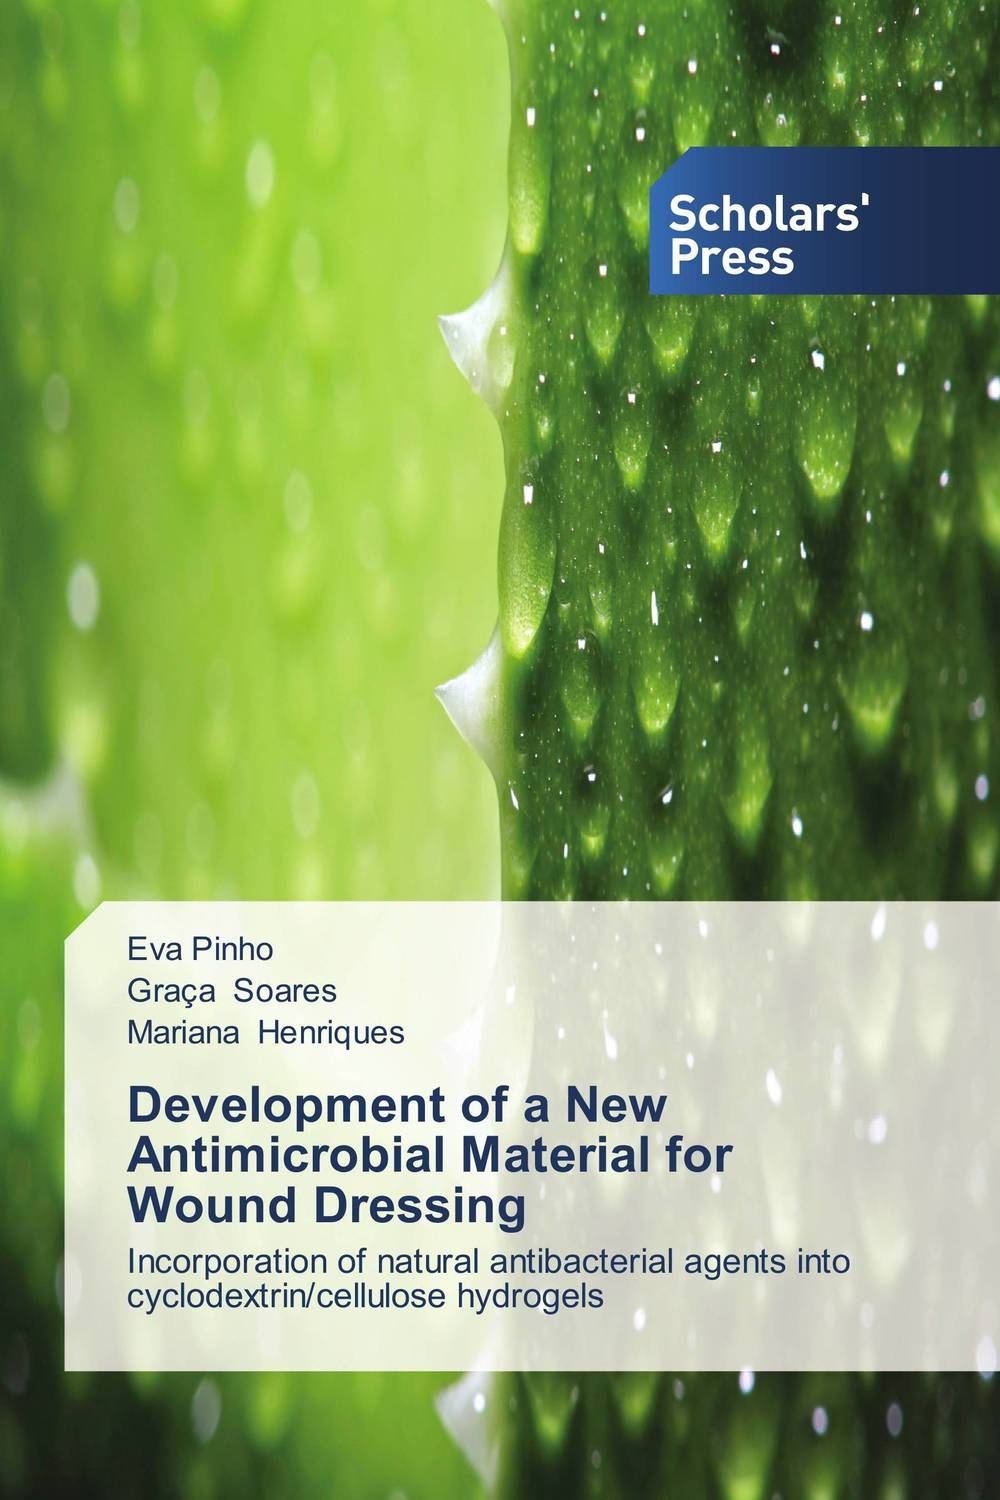 Development of a New Antimicrobial Material for Wound Dressing wound healing properties of some indigenous ghanaian plants